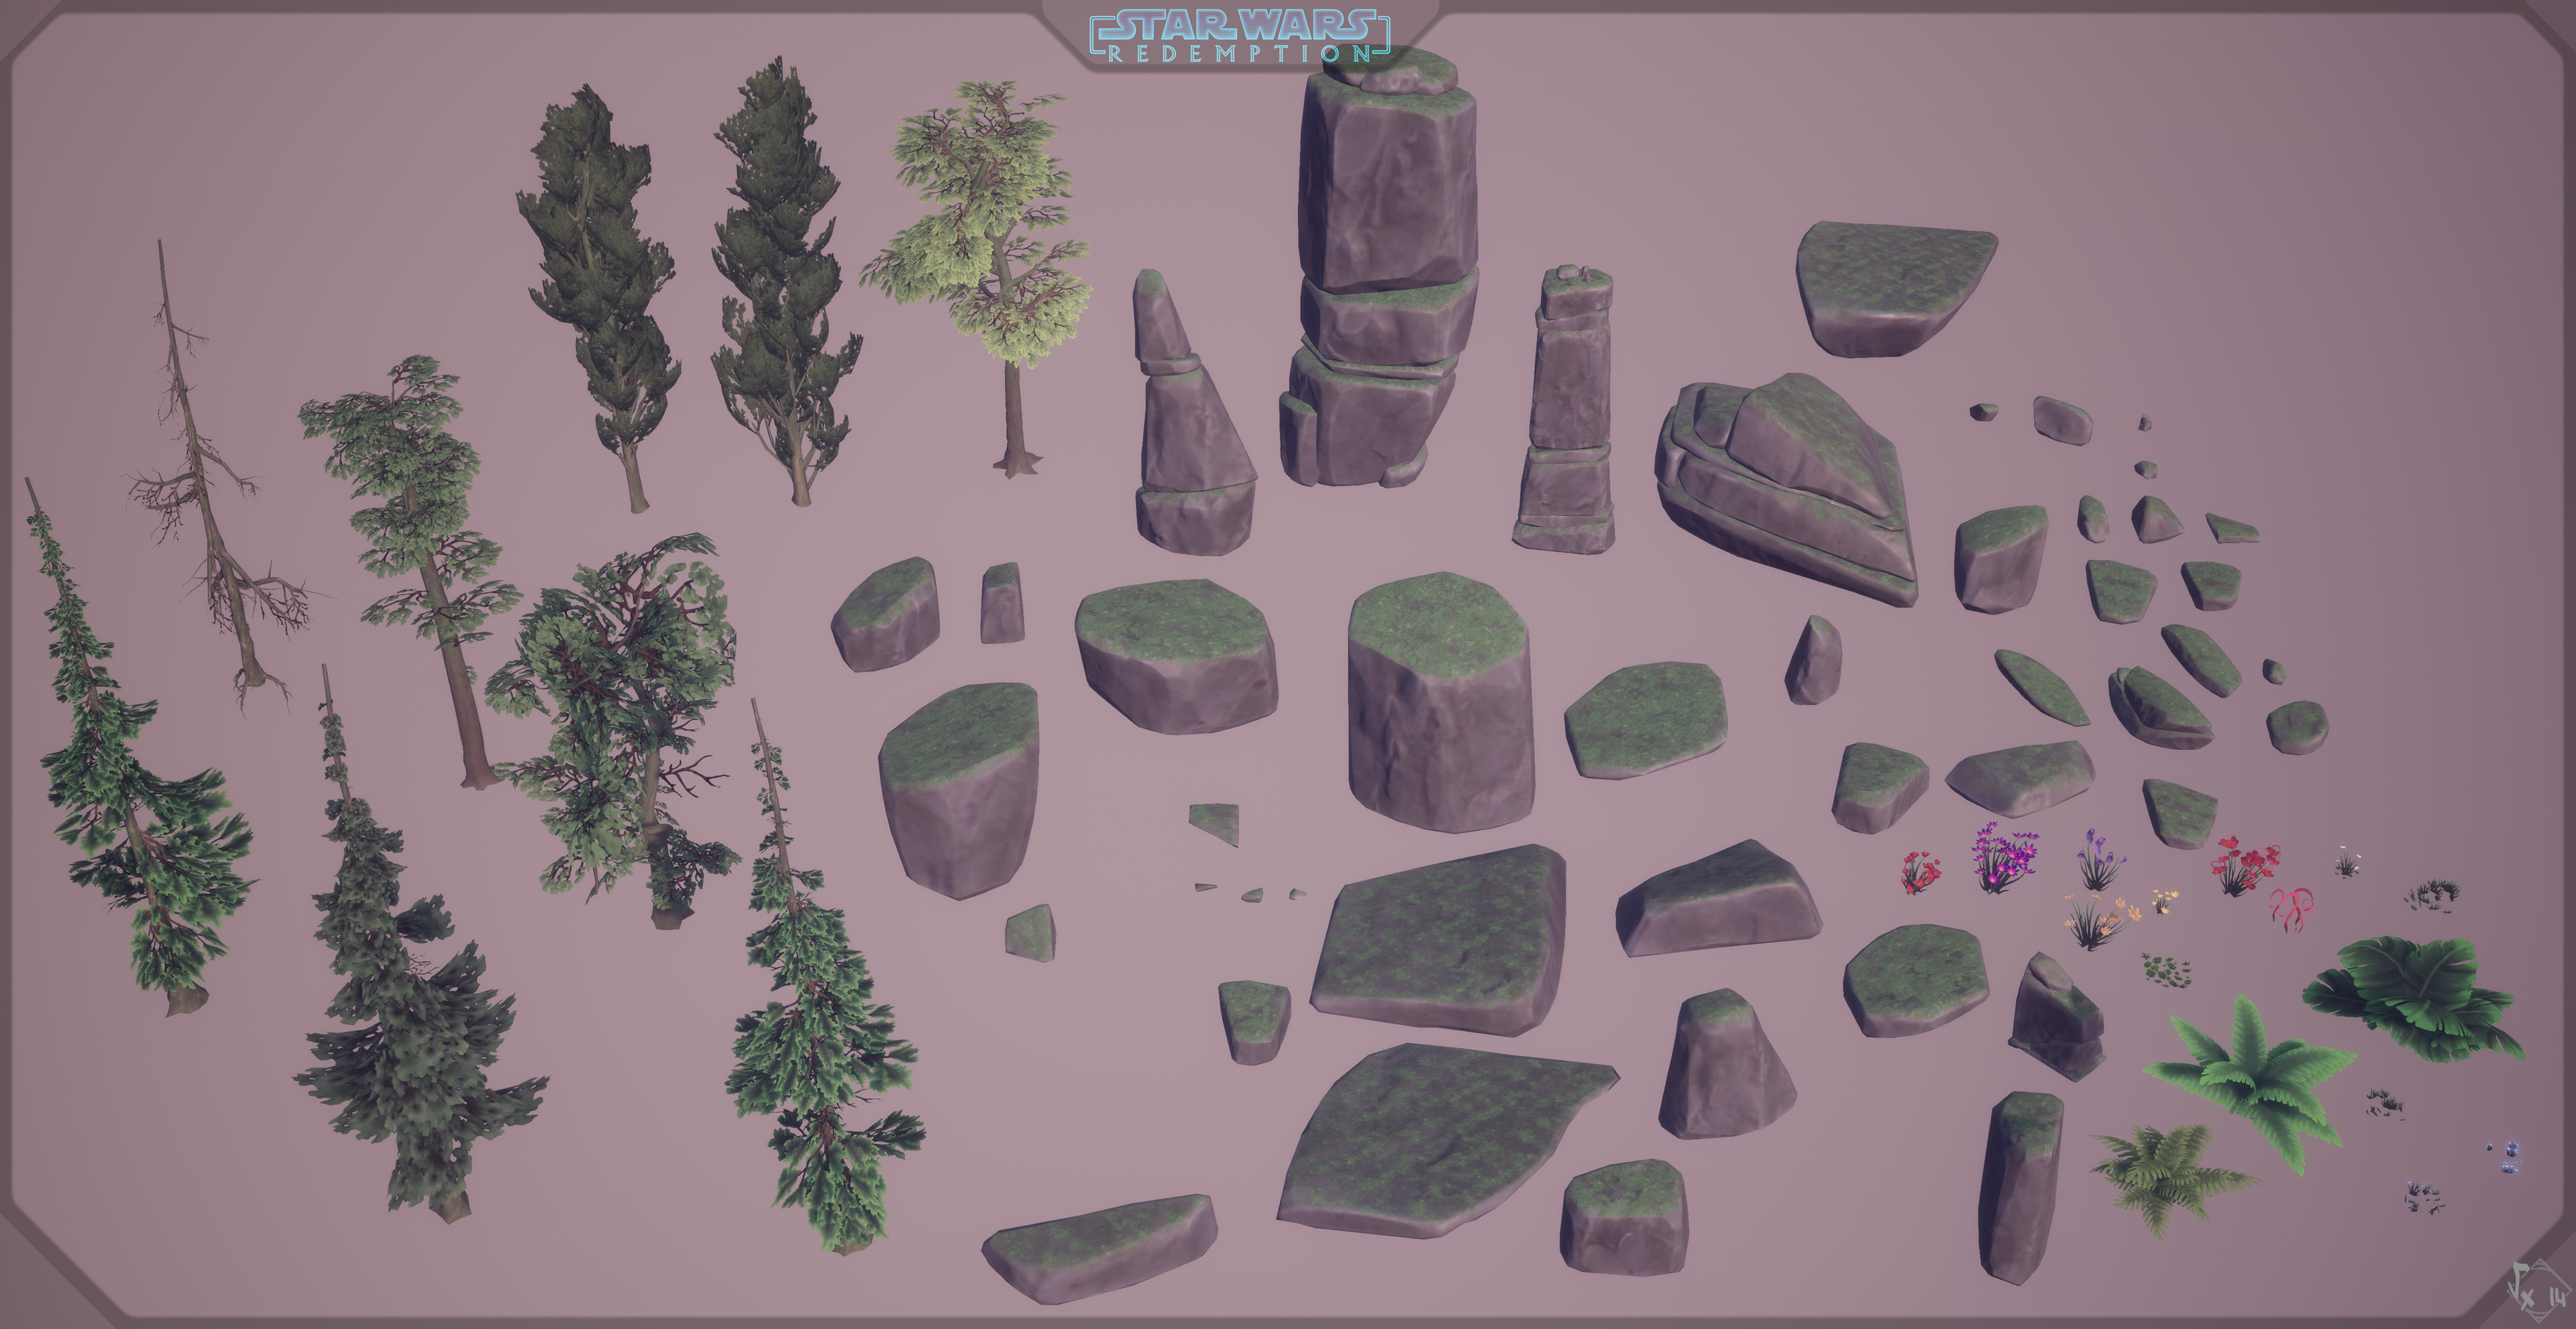 Lumberia's nature assets used to compose levels